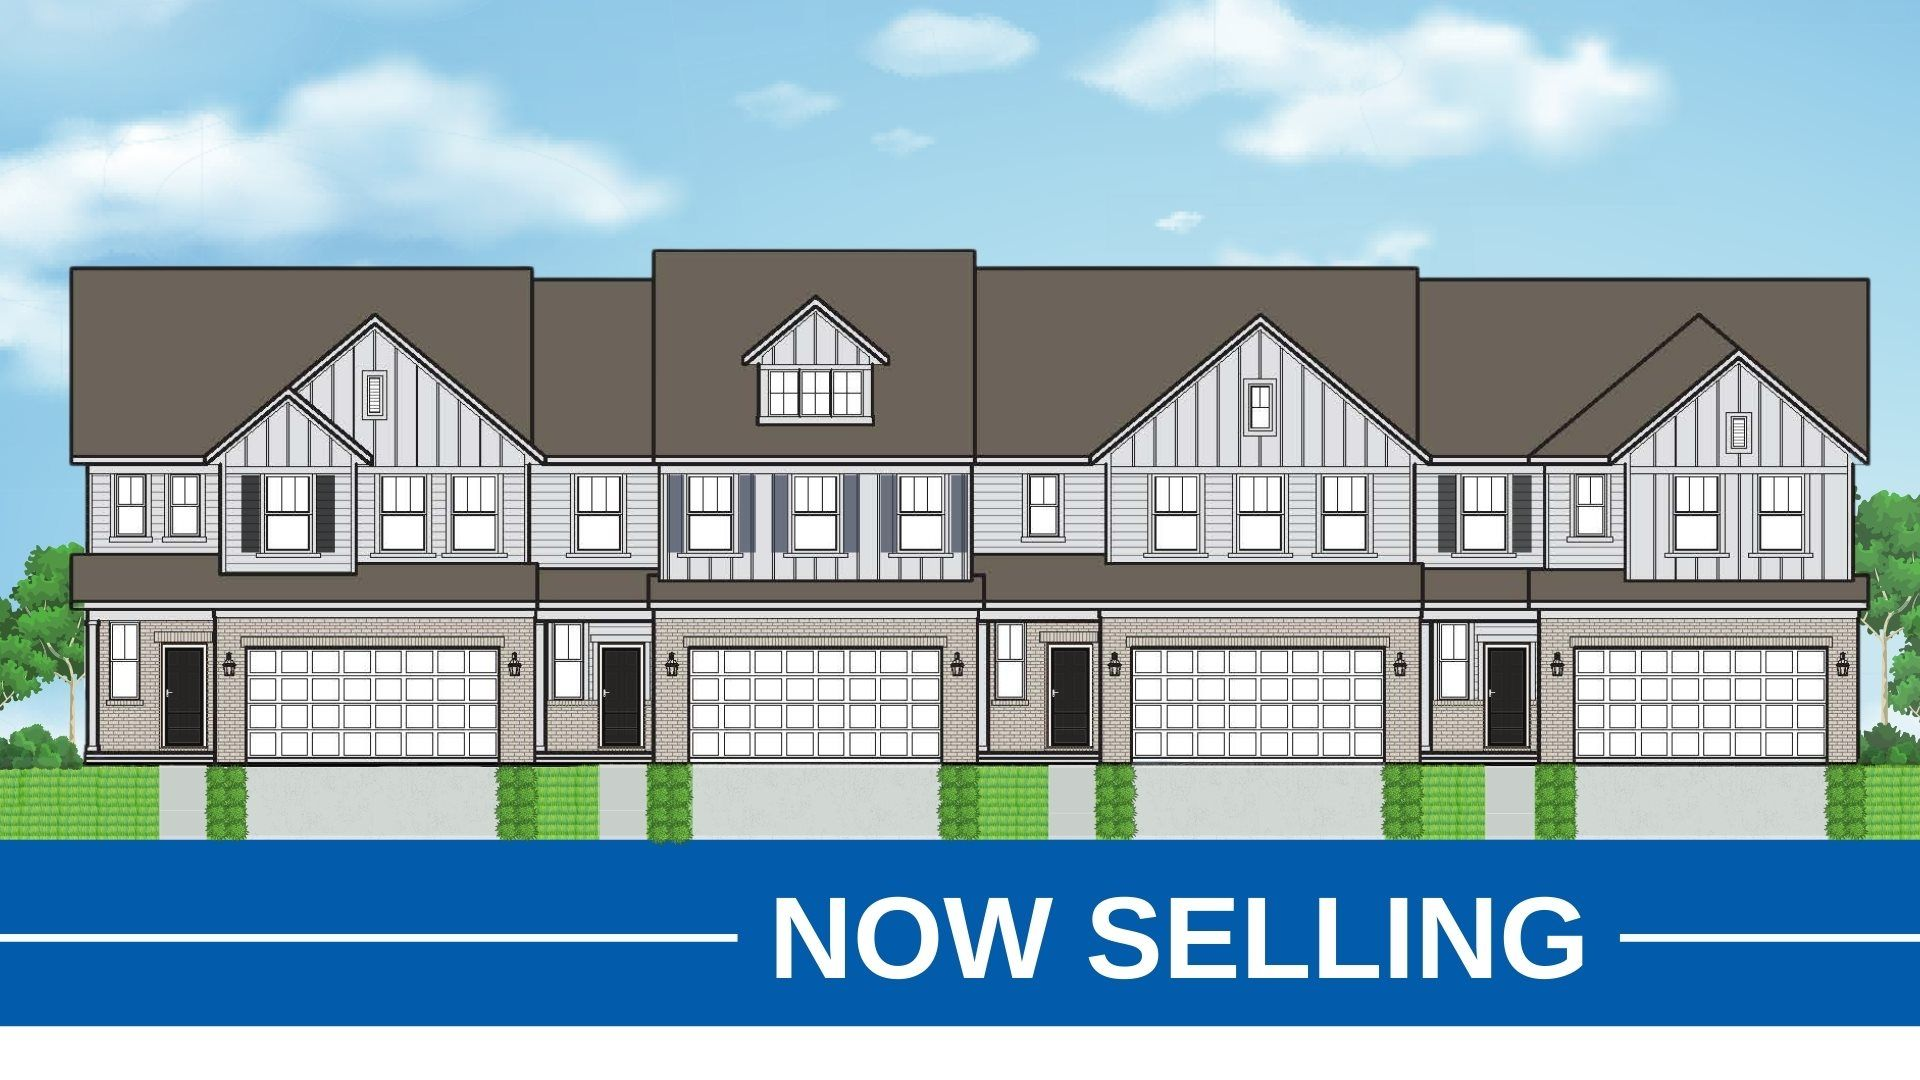 New Homes by Lennar in Gallatin, TN!